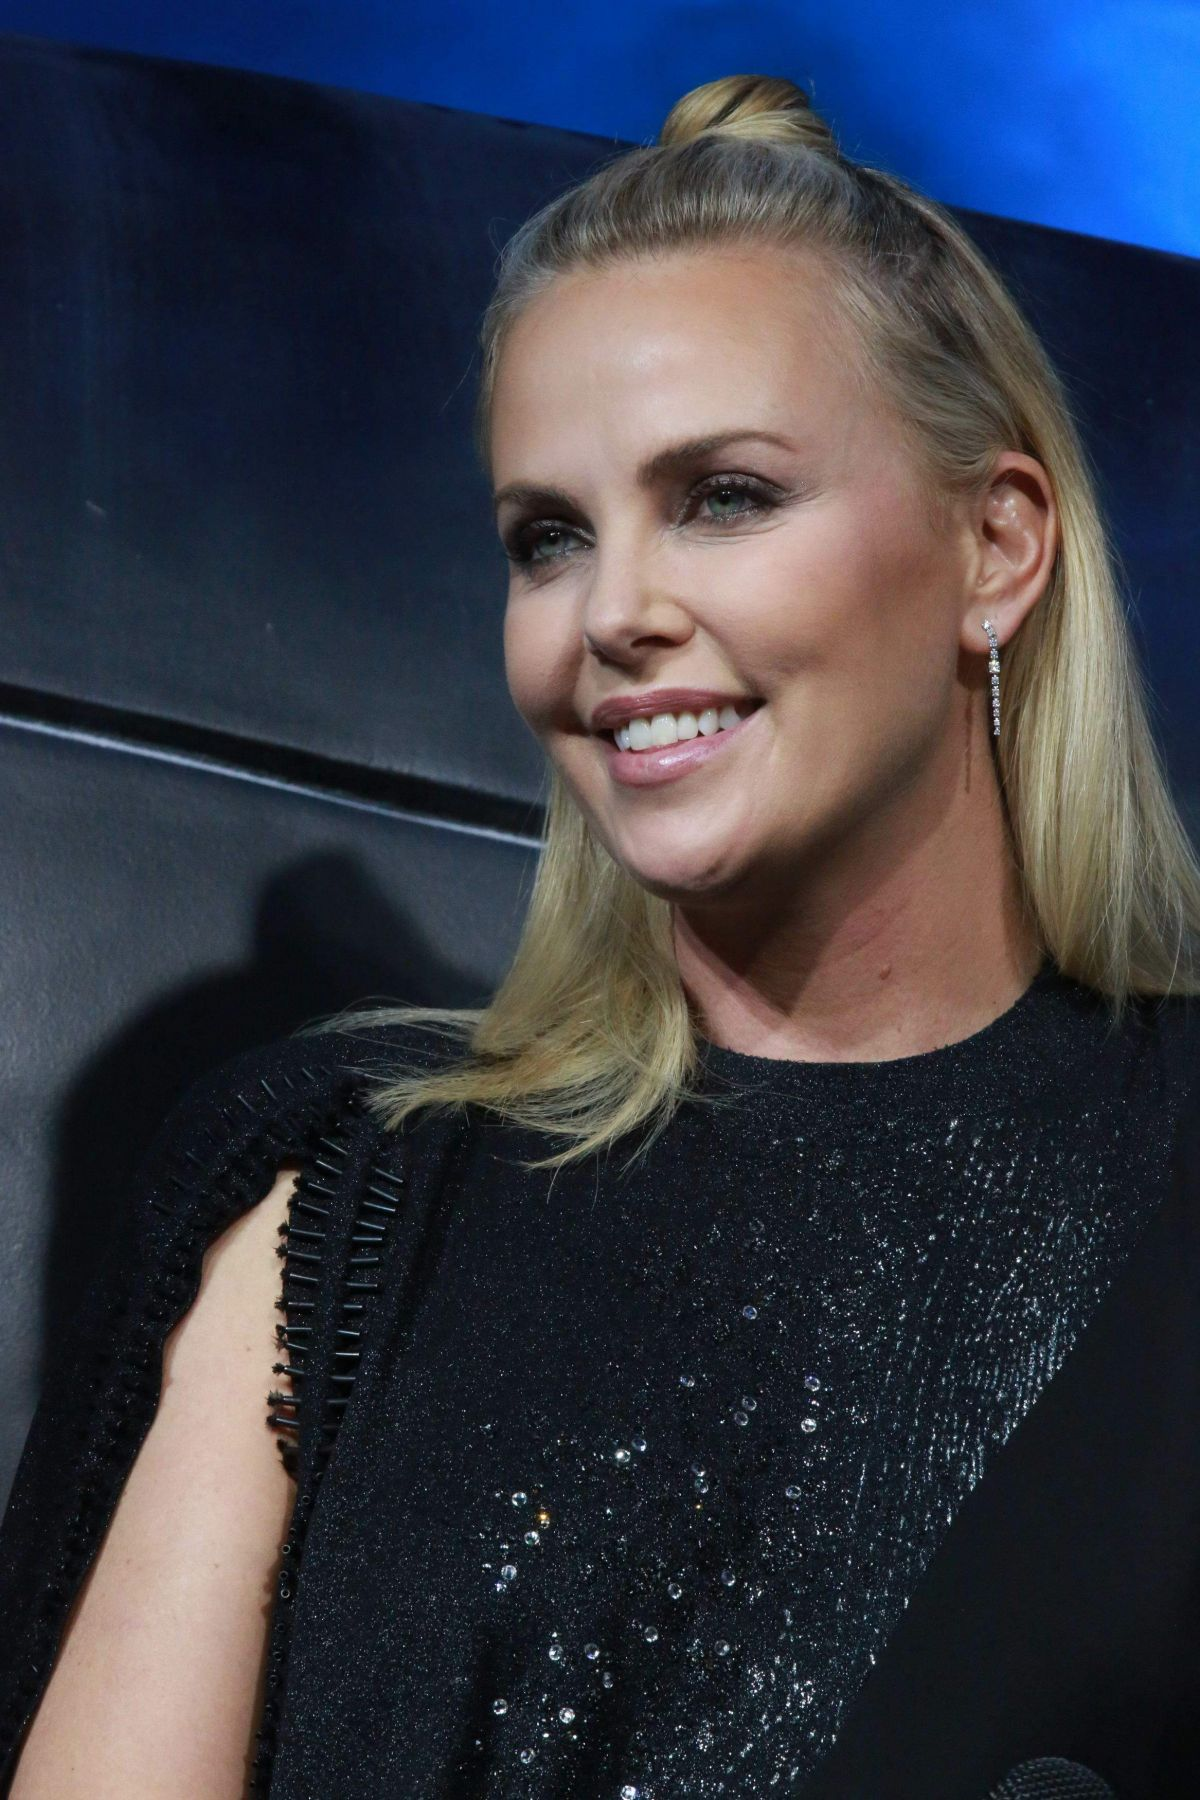 CHARLIZE THERON at The Fate of the Furious Press ... Charlize Theron